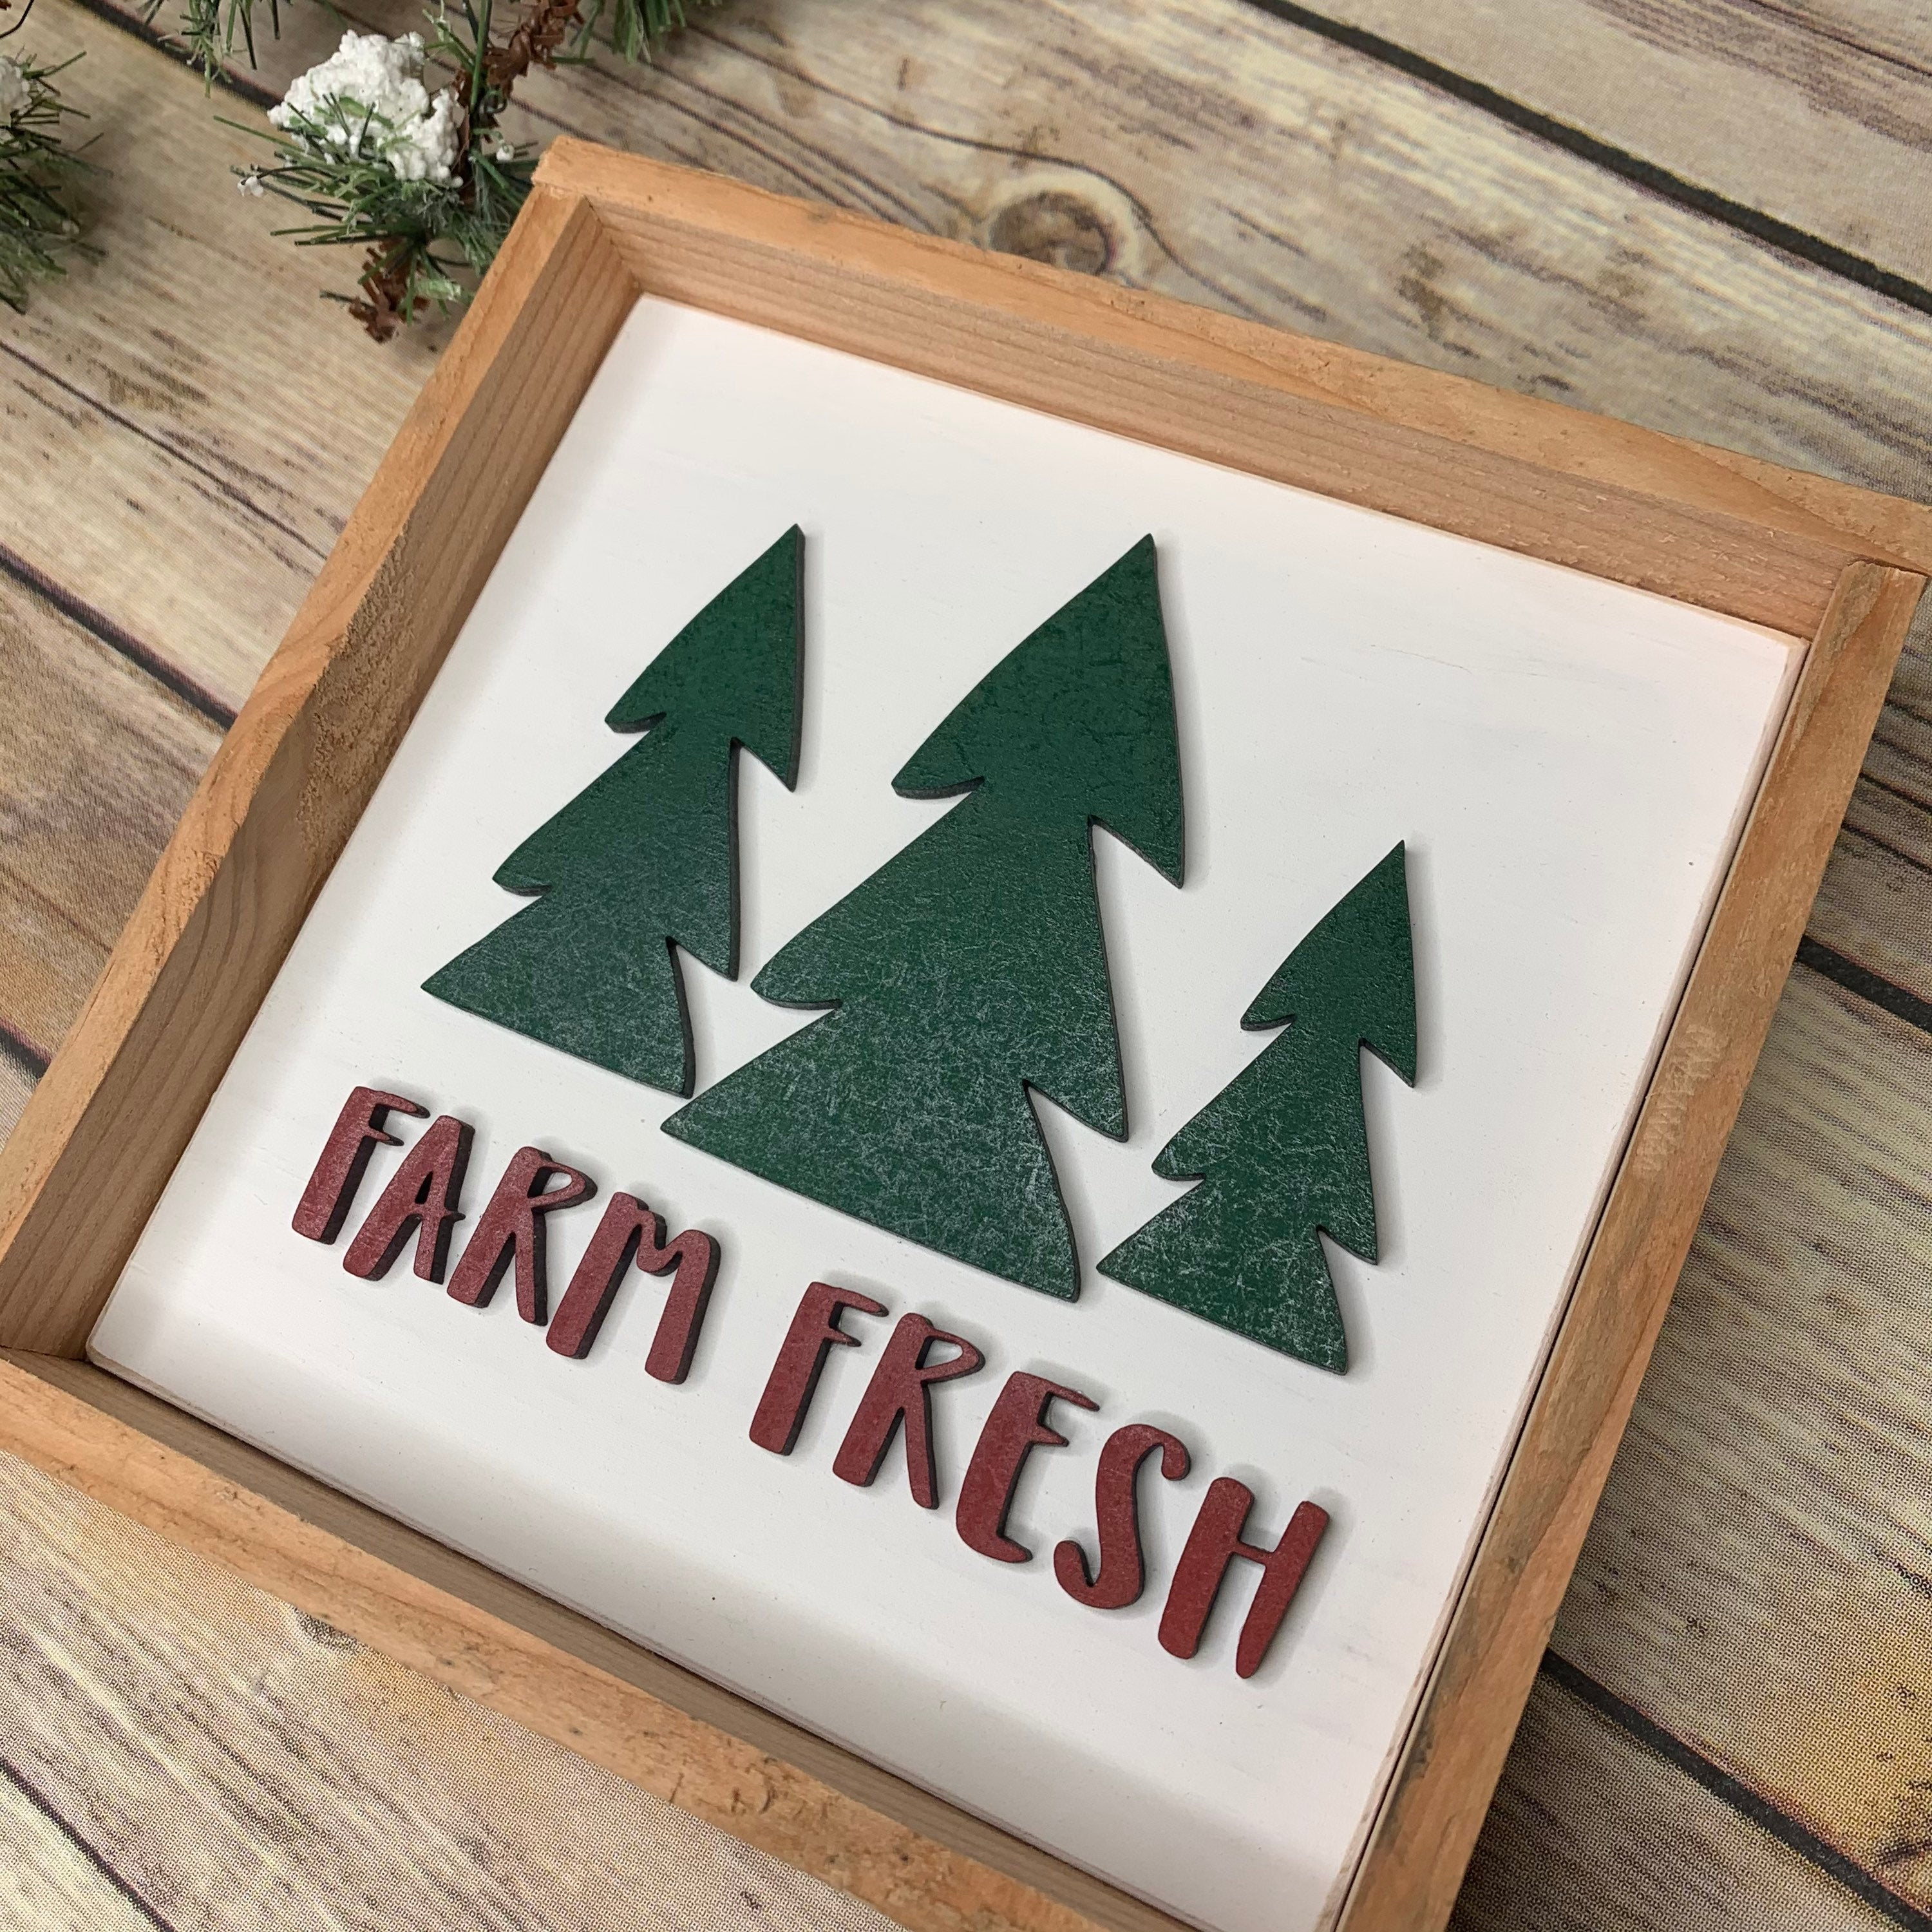 6x6 Farm Fresh Christmas Trees 3D Wood Sign | Christmas sign | Small wood sign | Christmas Decor | Christmas | December Sign | Tiered tray